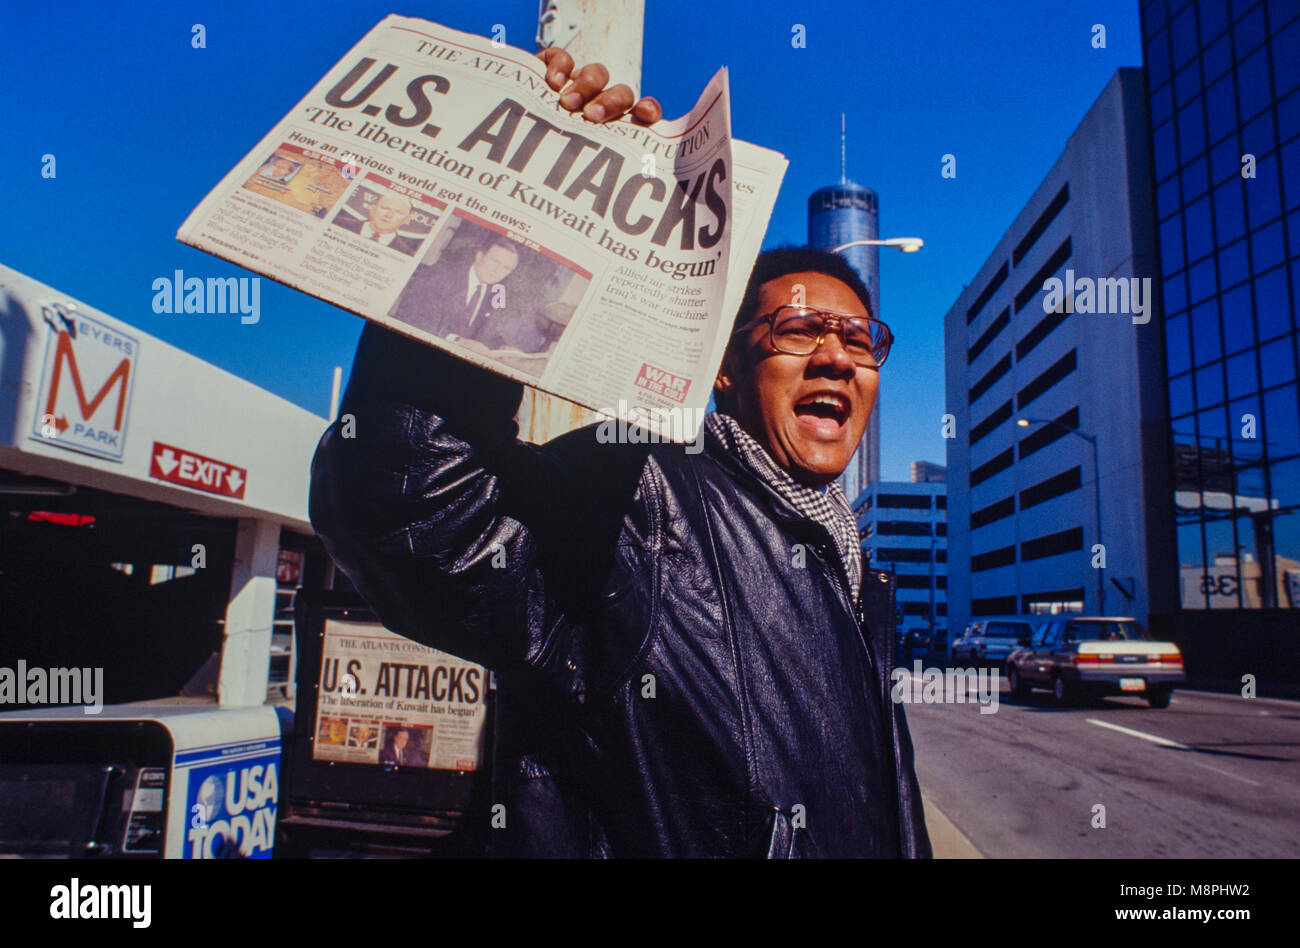 A newspaper vendor on an Atlanta, Georgia street corner holds a paper with the headline U.S. Attacks at the start - Stock Image